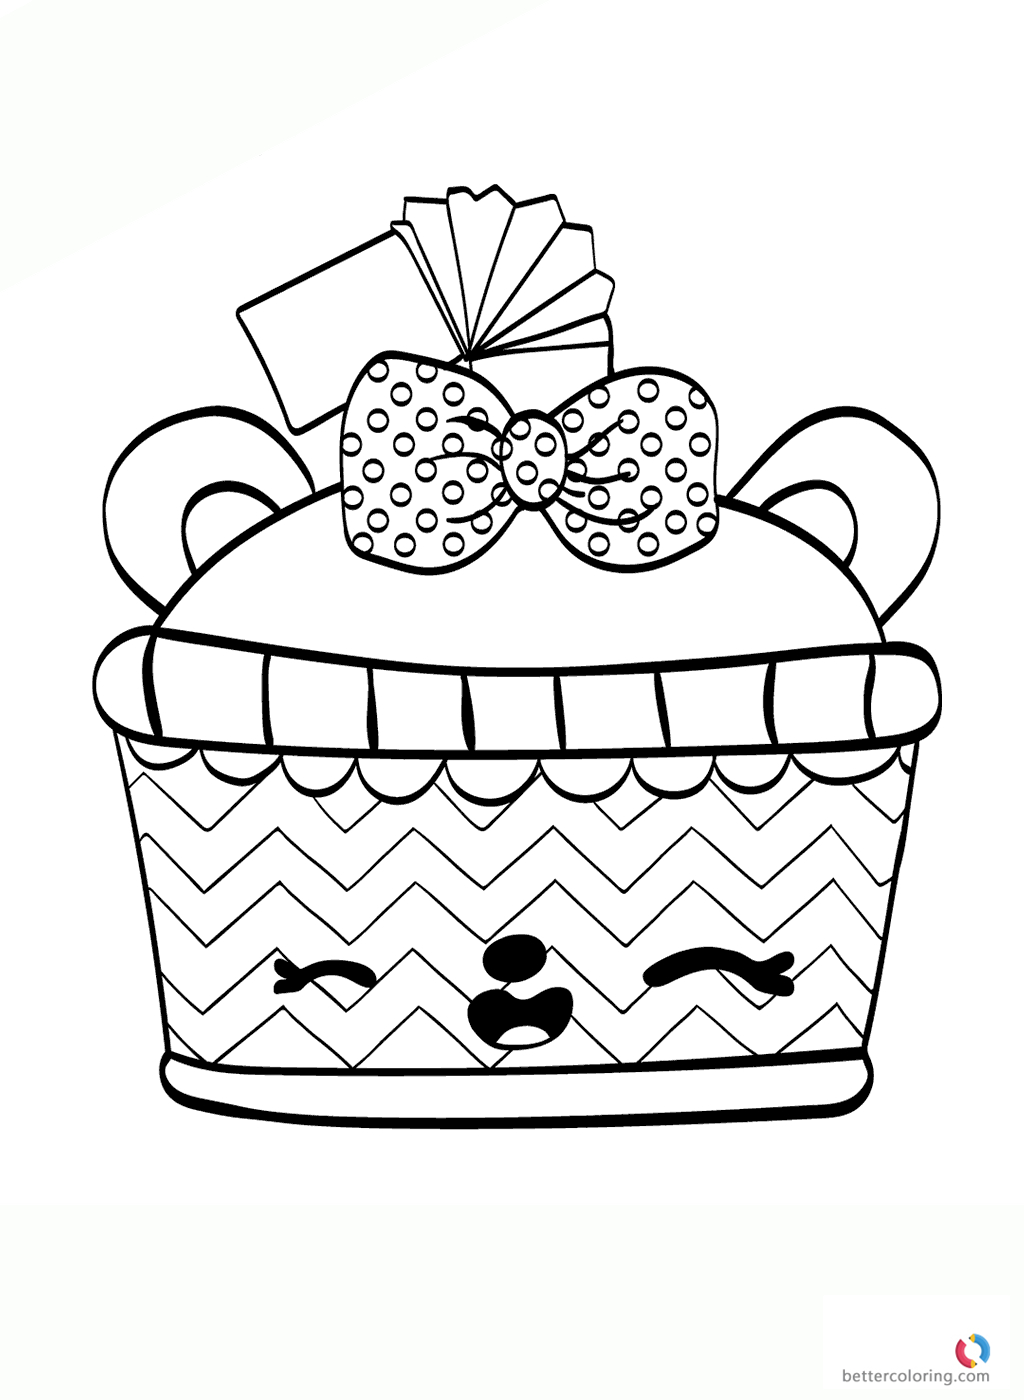 Num nom coloring pages num nom coloring pages coloring pages for